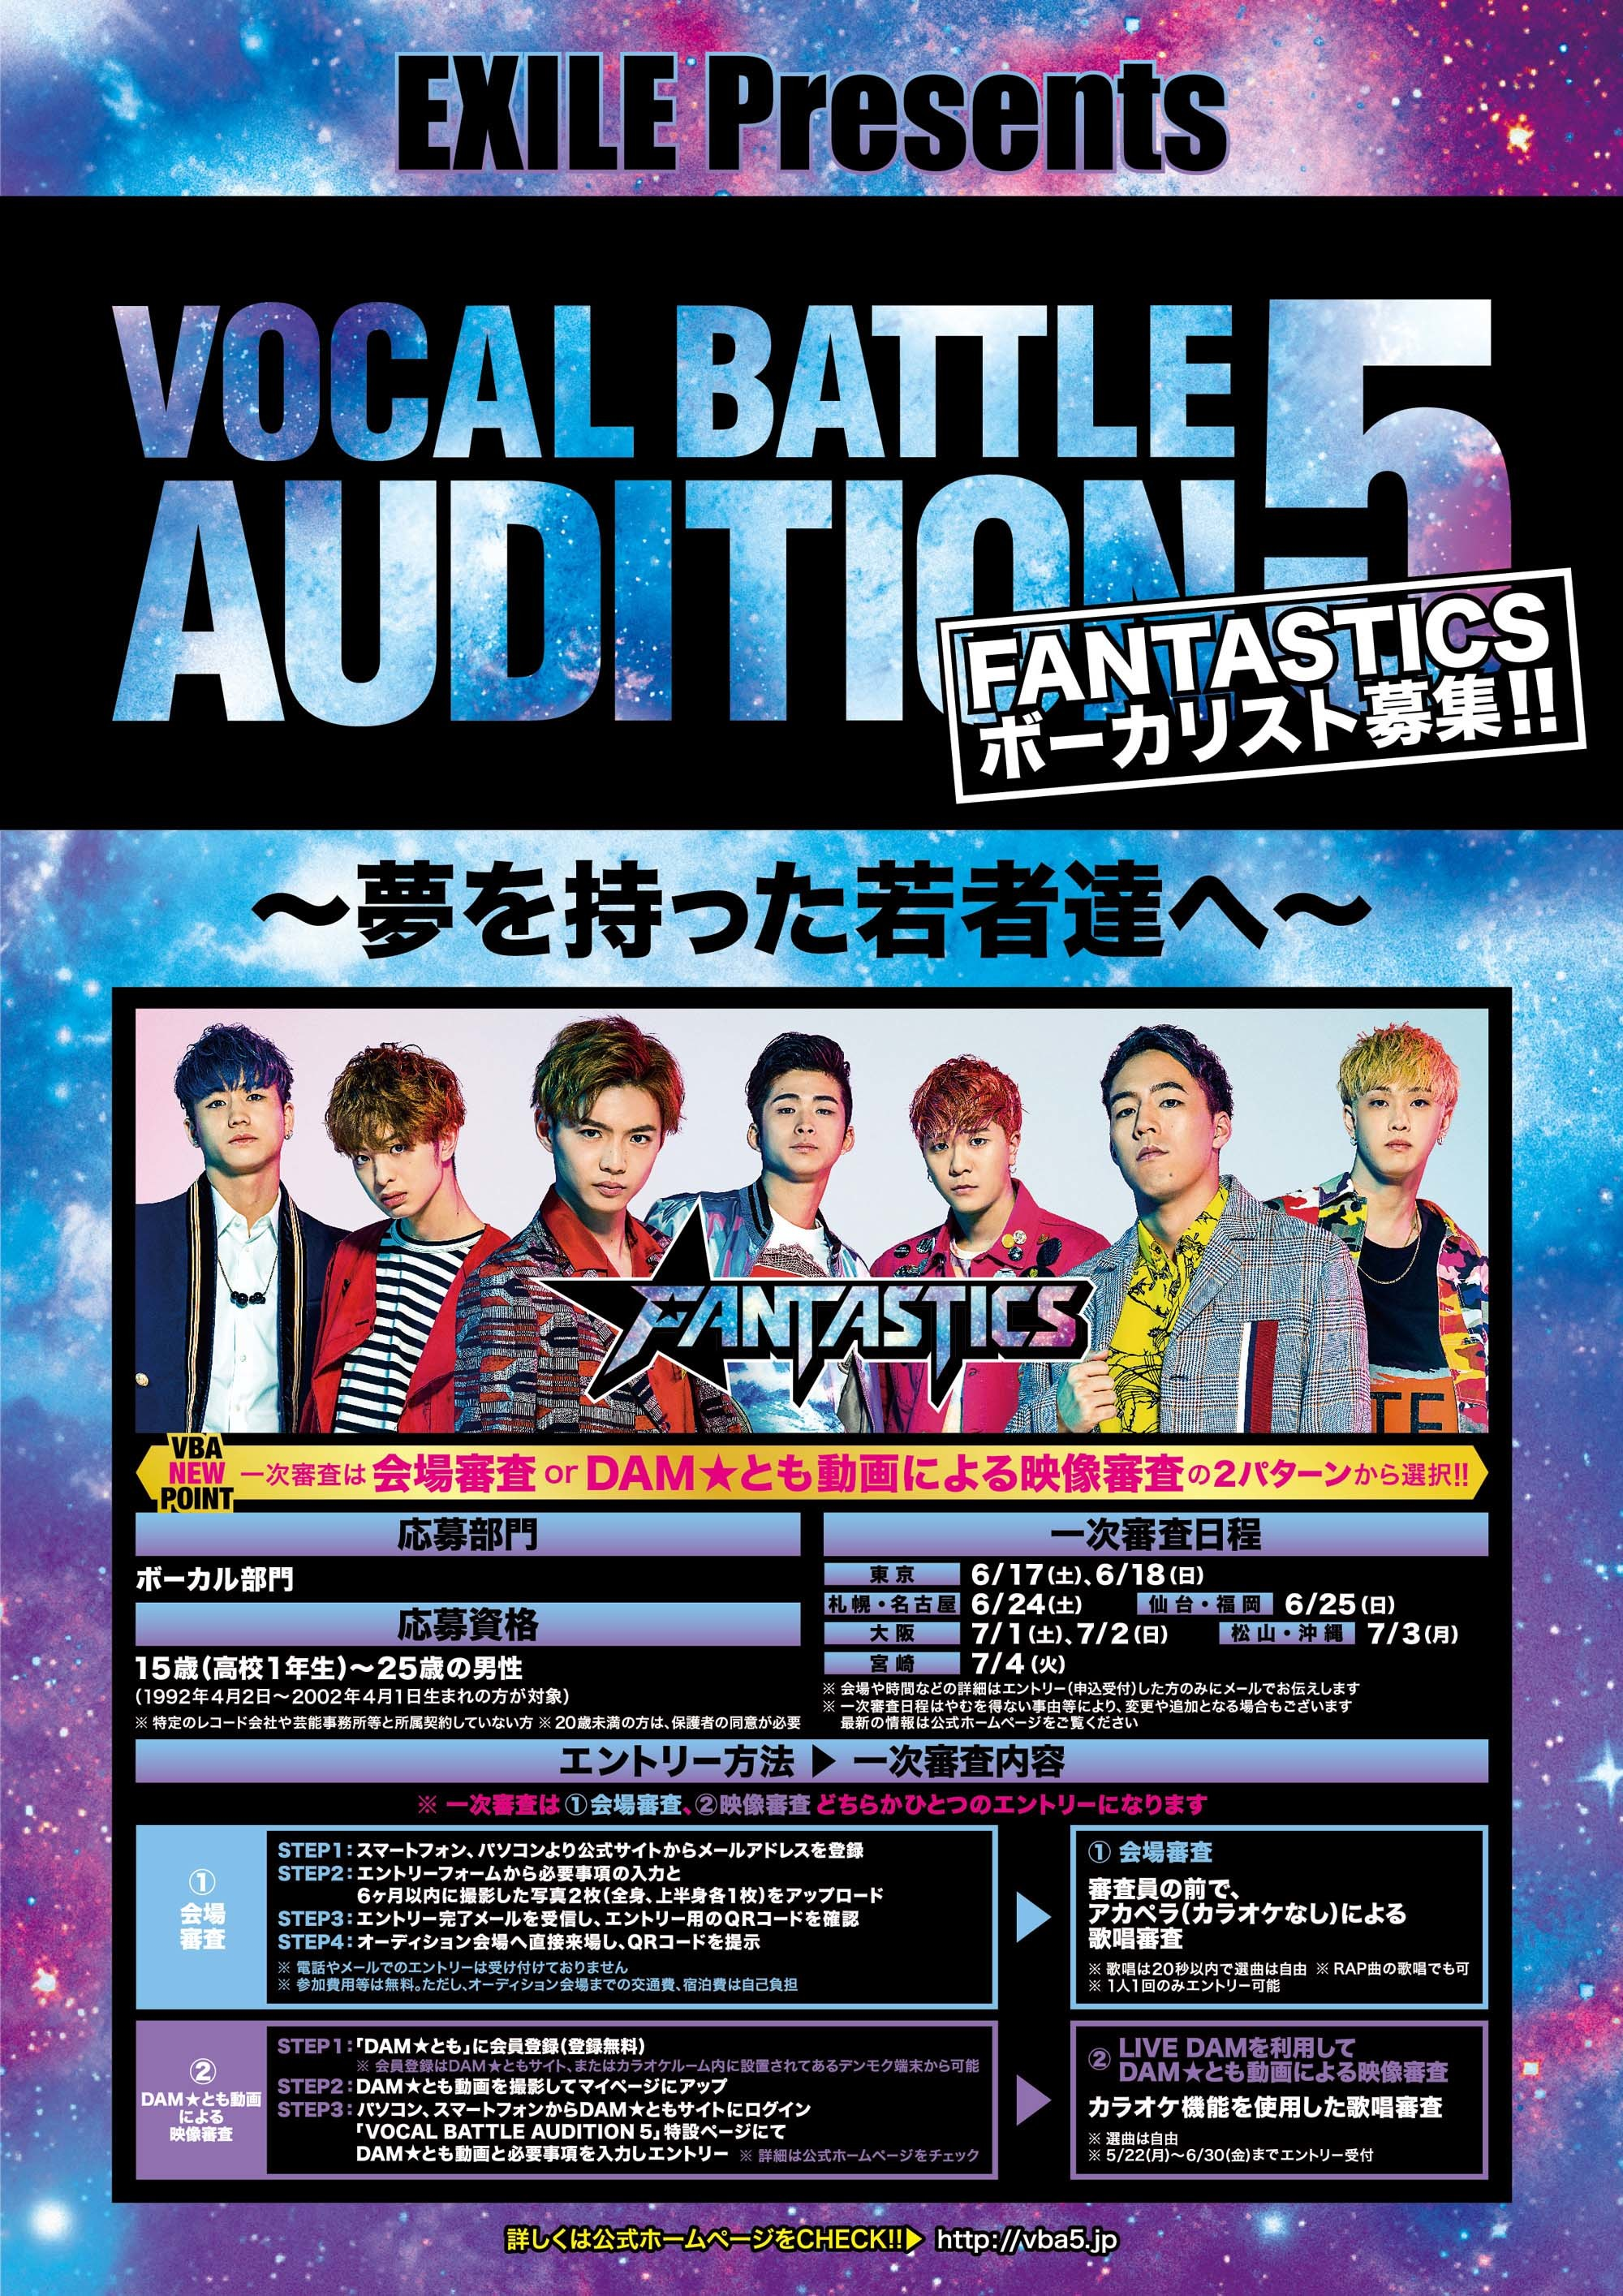 EXILE Presents VOCAL BATTLE AUDITION5